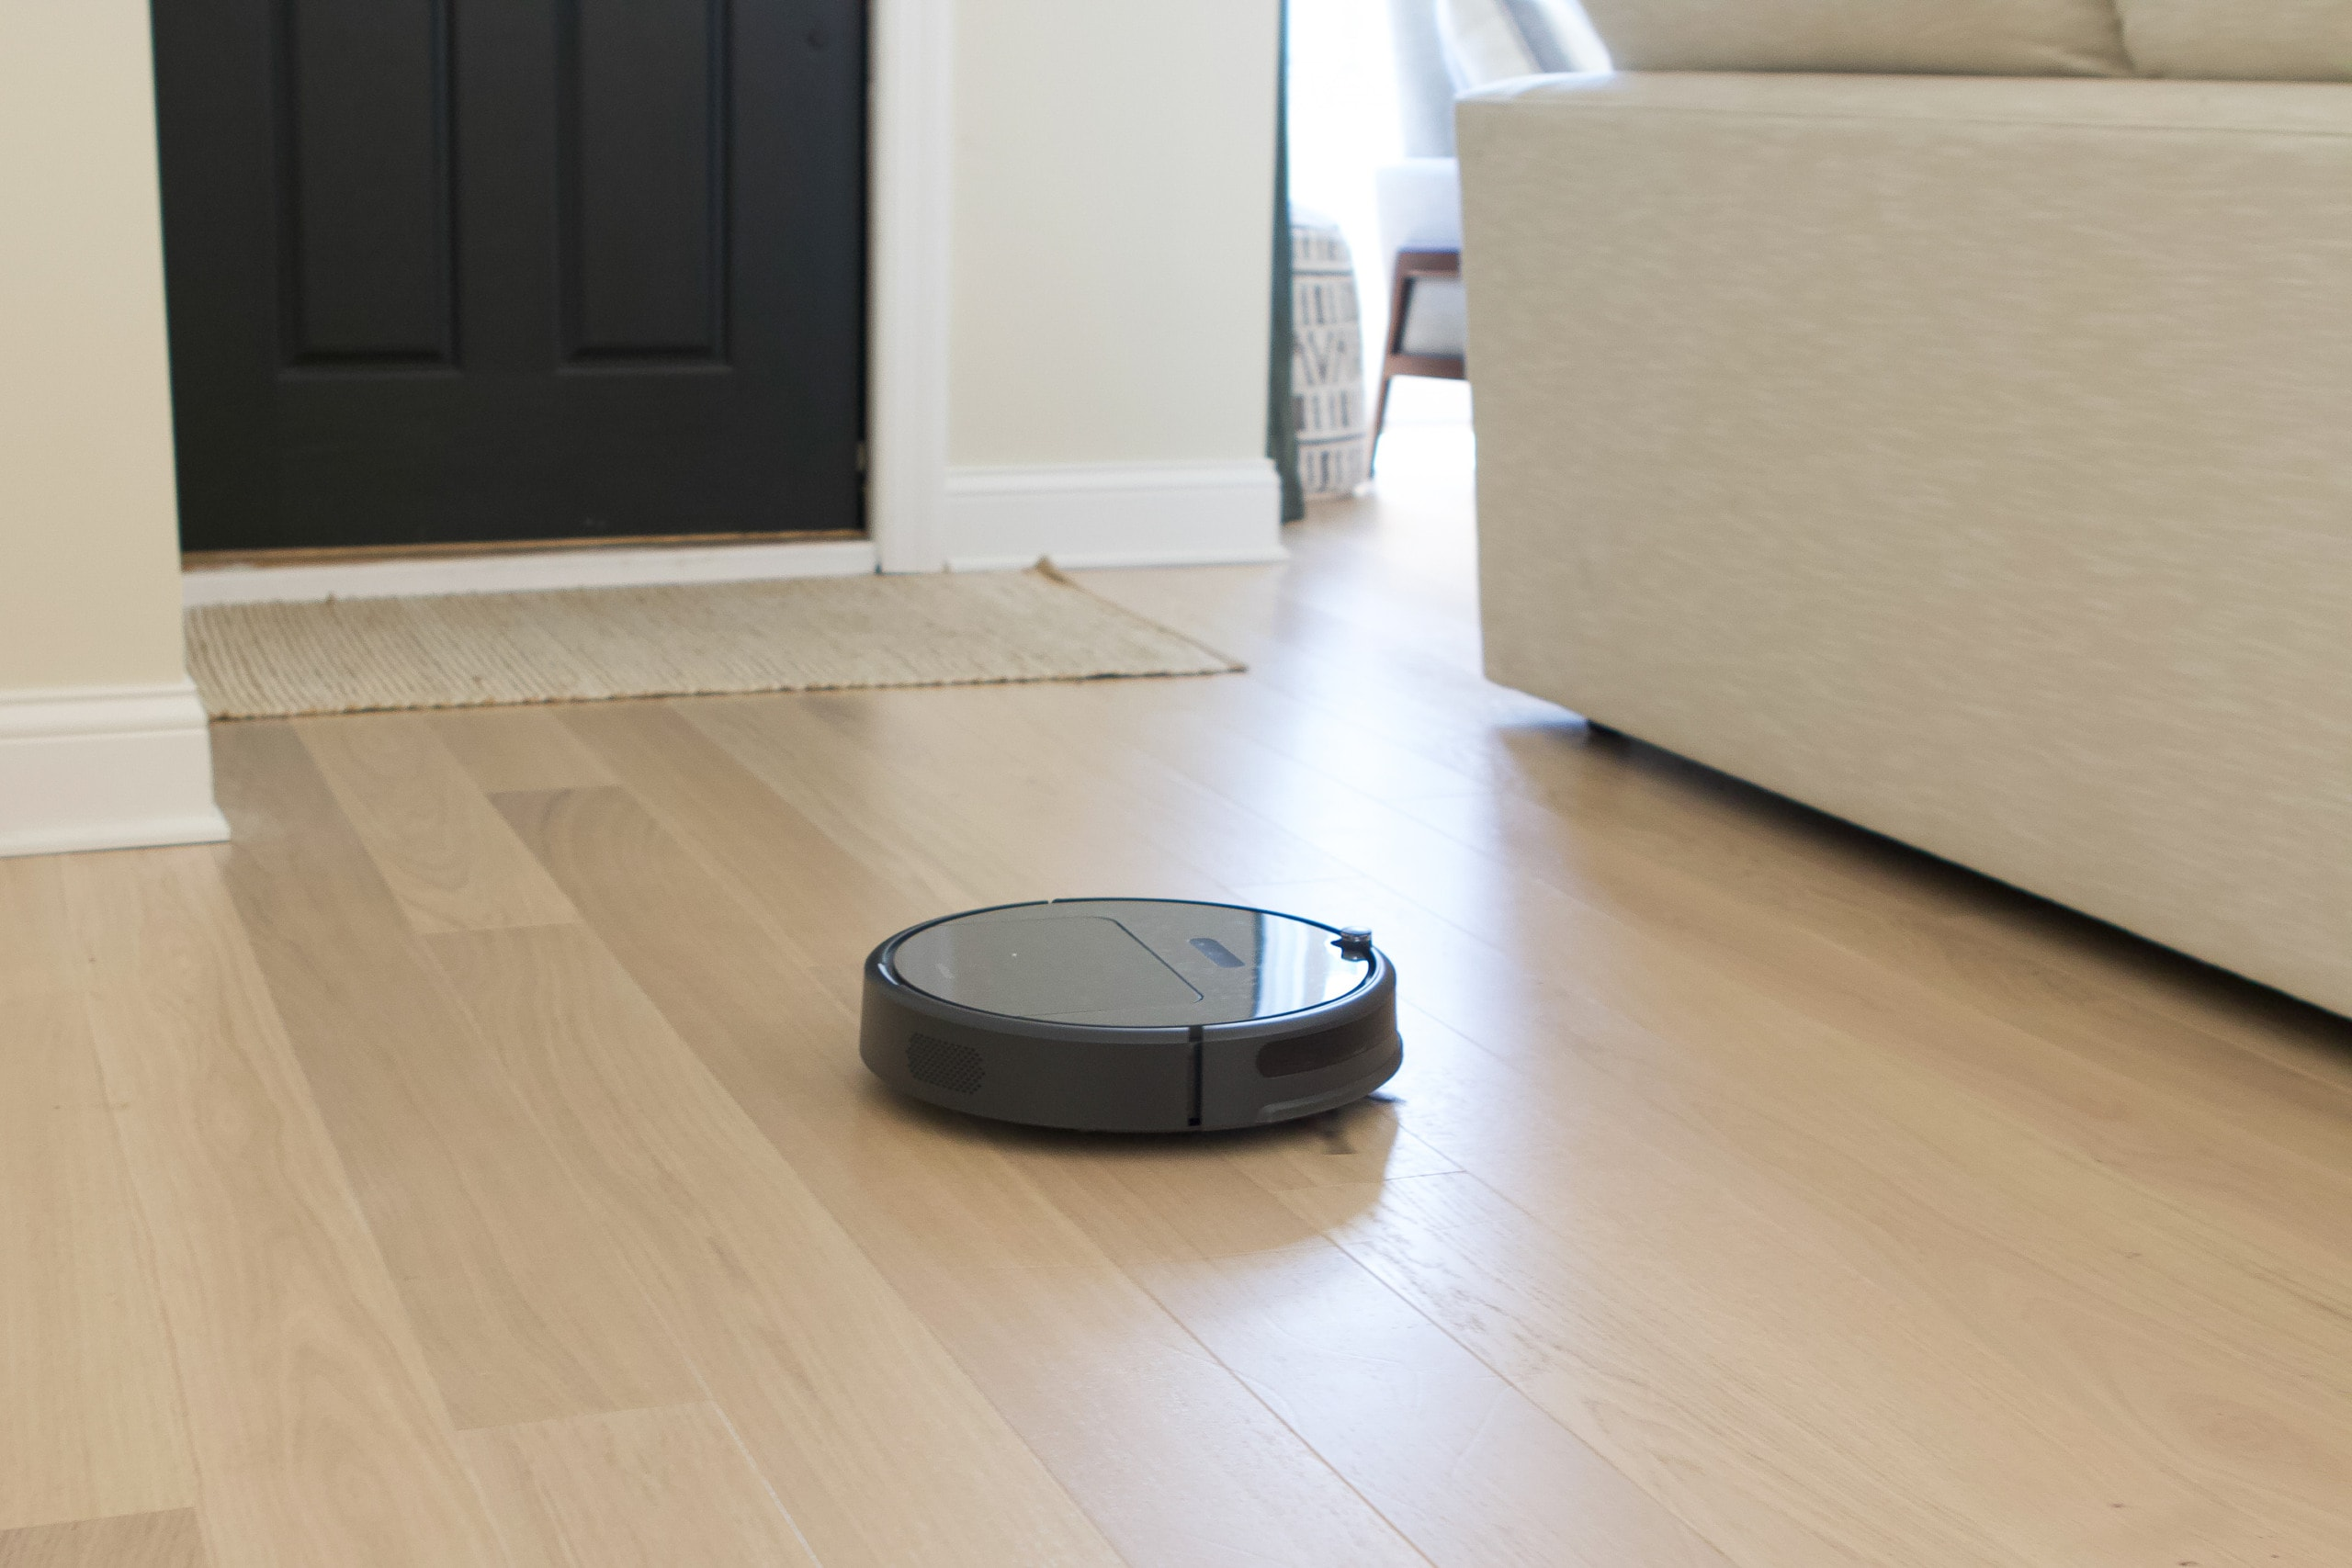 Figuring out our robot vacuum